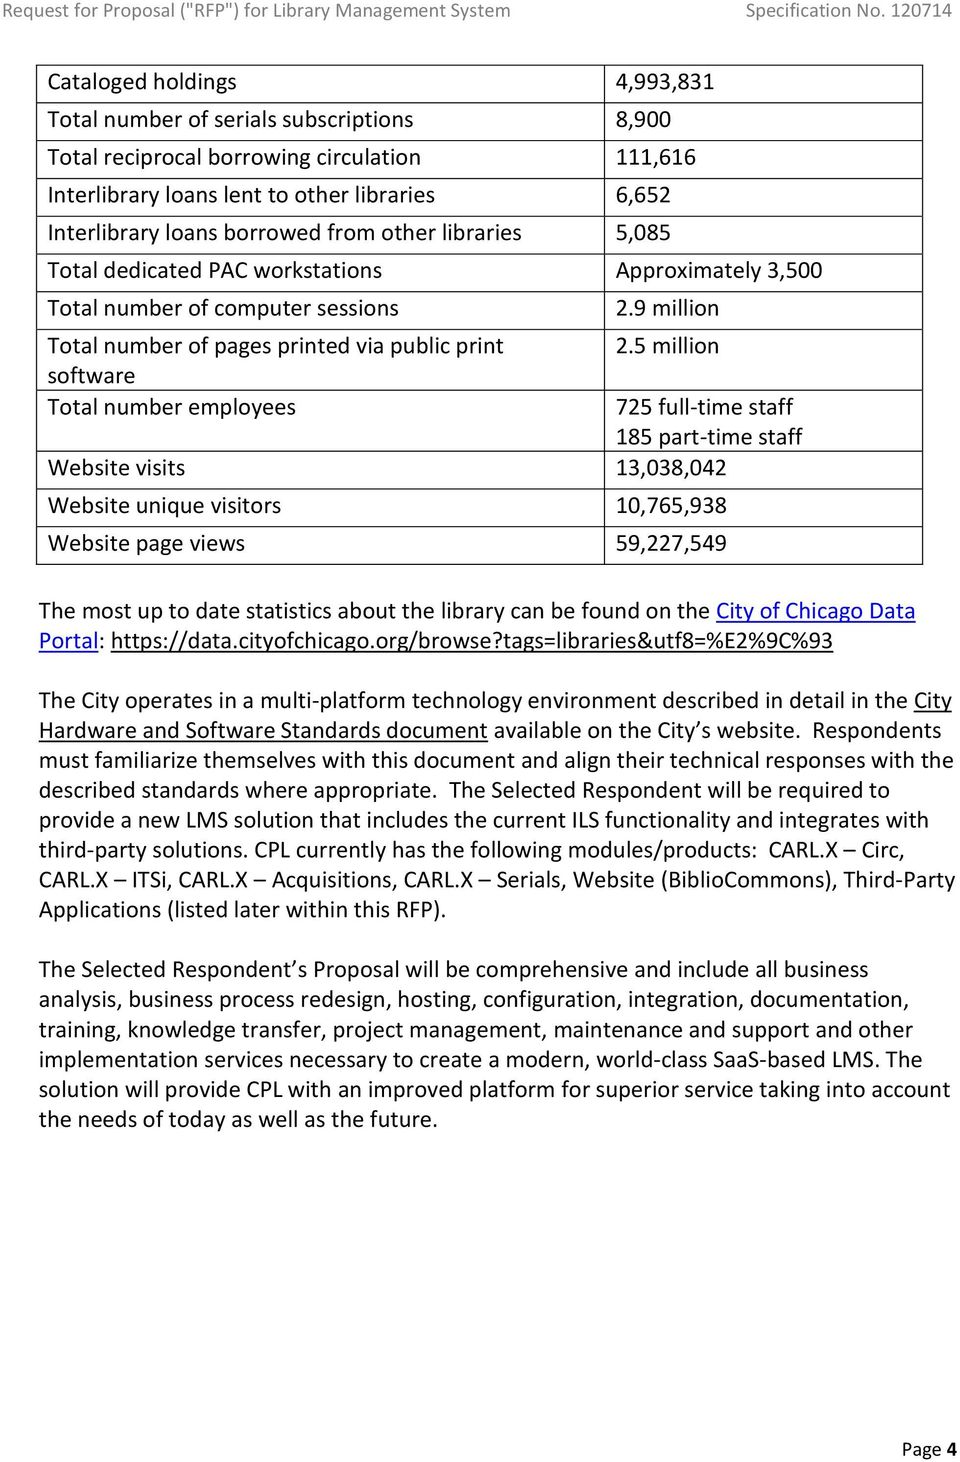 REQUEST FOR PROPOSAL (